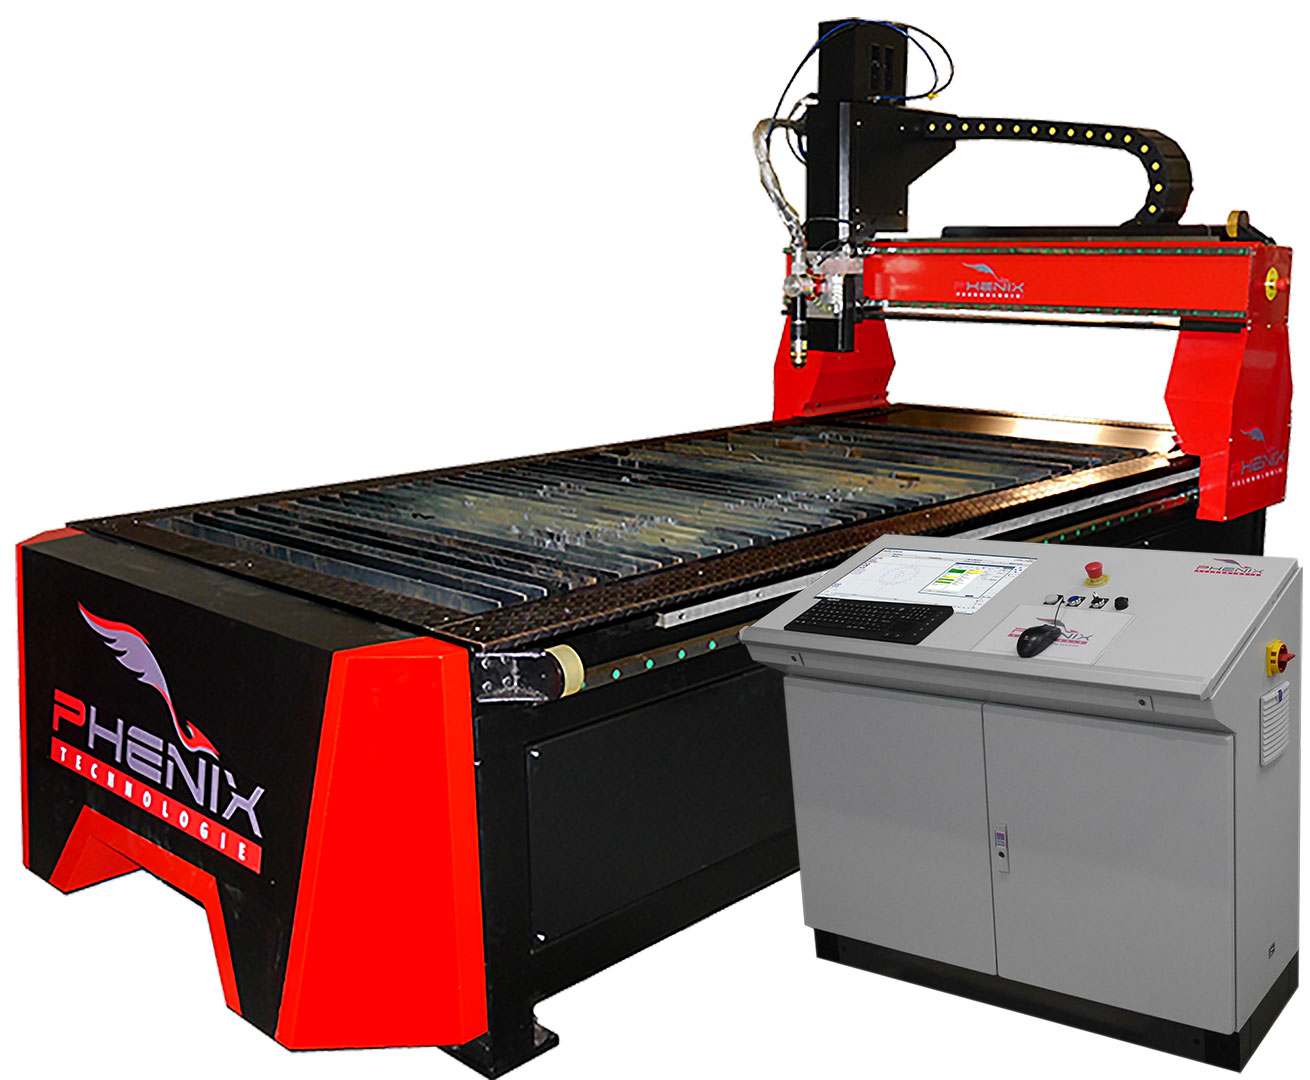 md cut 2017CNC - MD Cut Plasma cutting machine